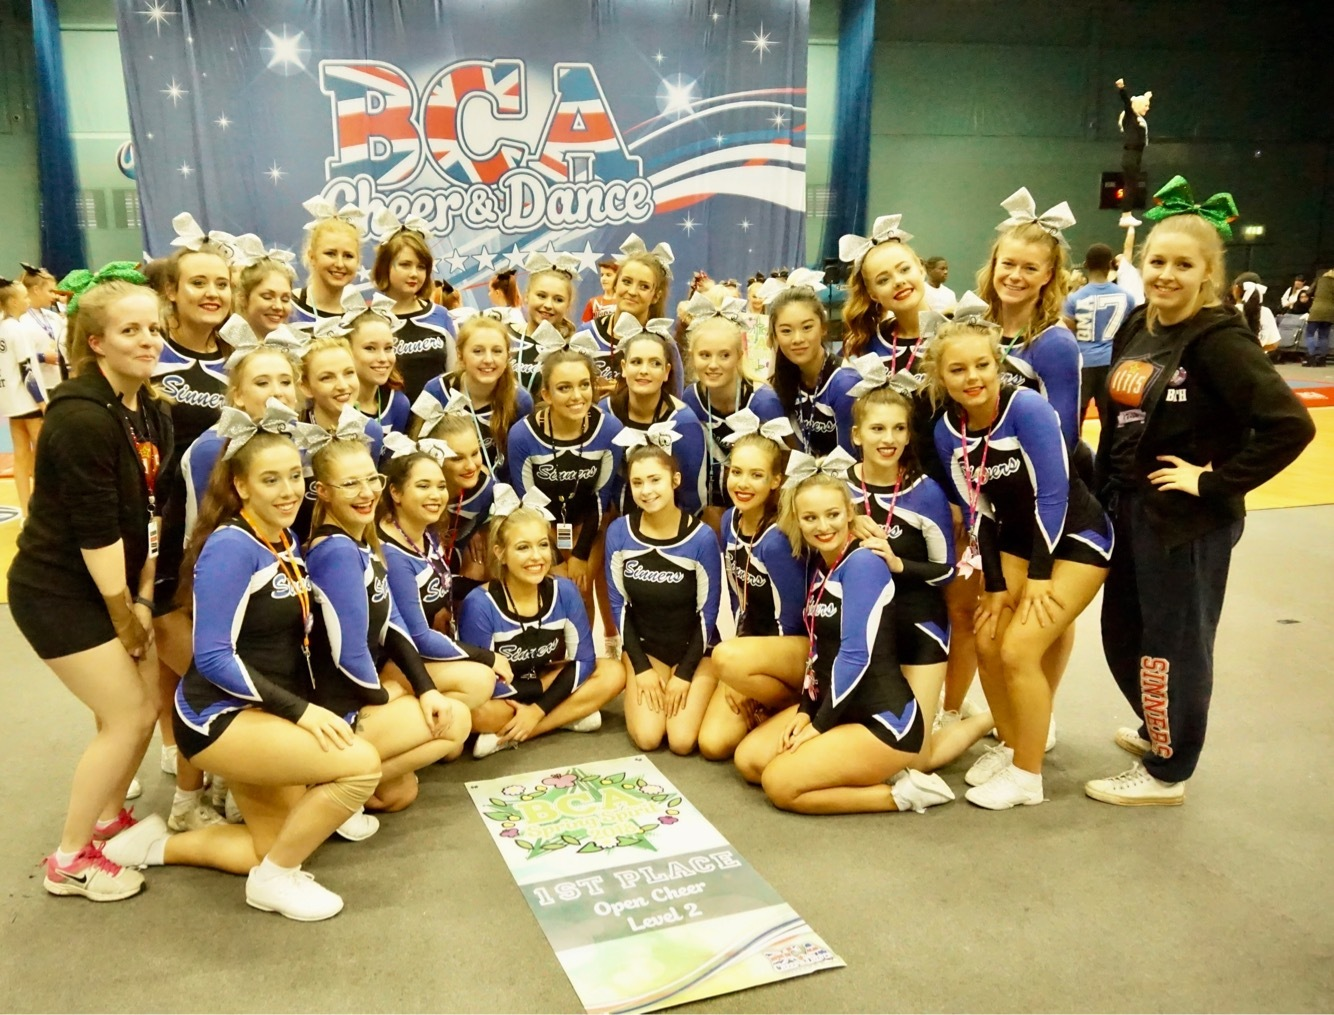 Worcester Sinners cheerleaders find more success after awards win